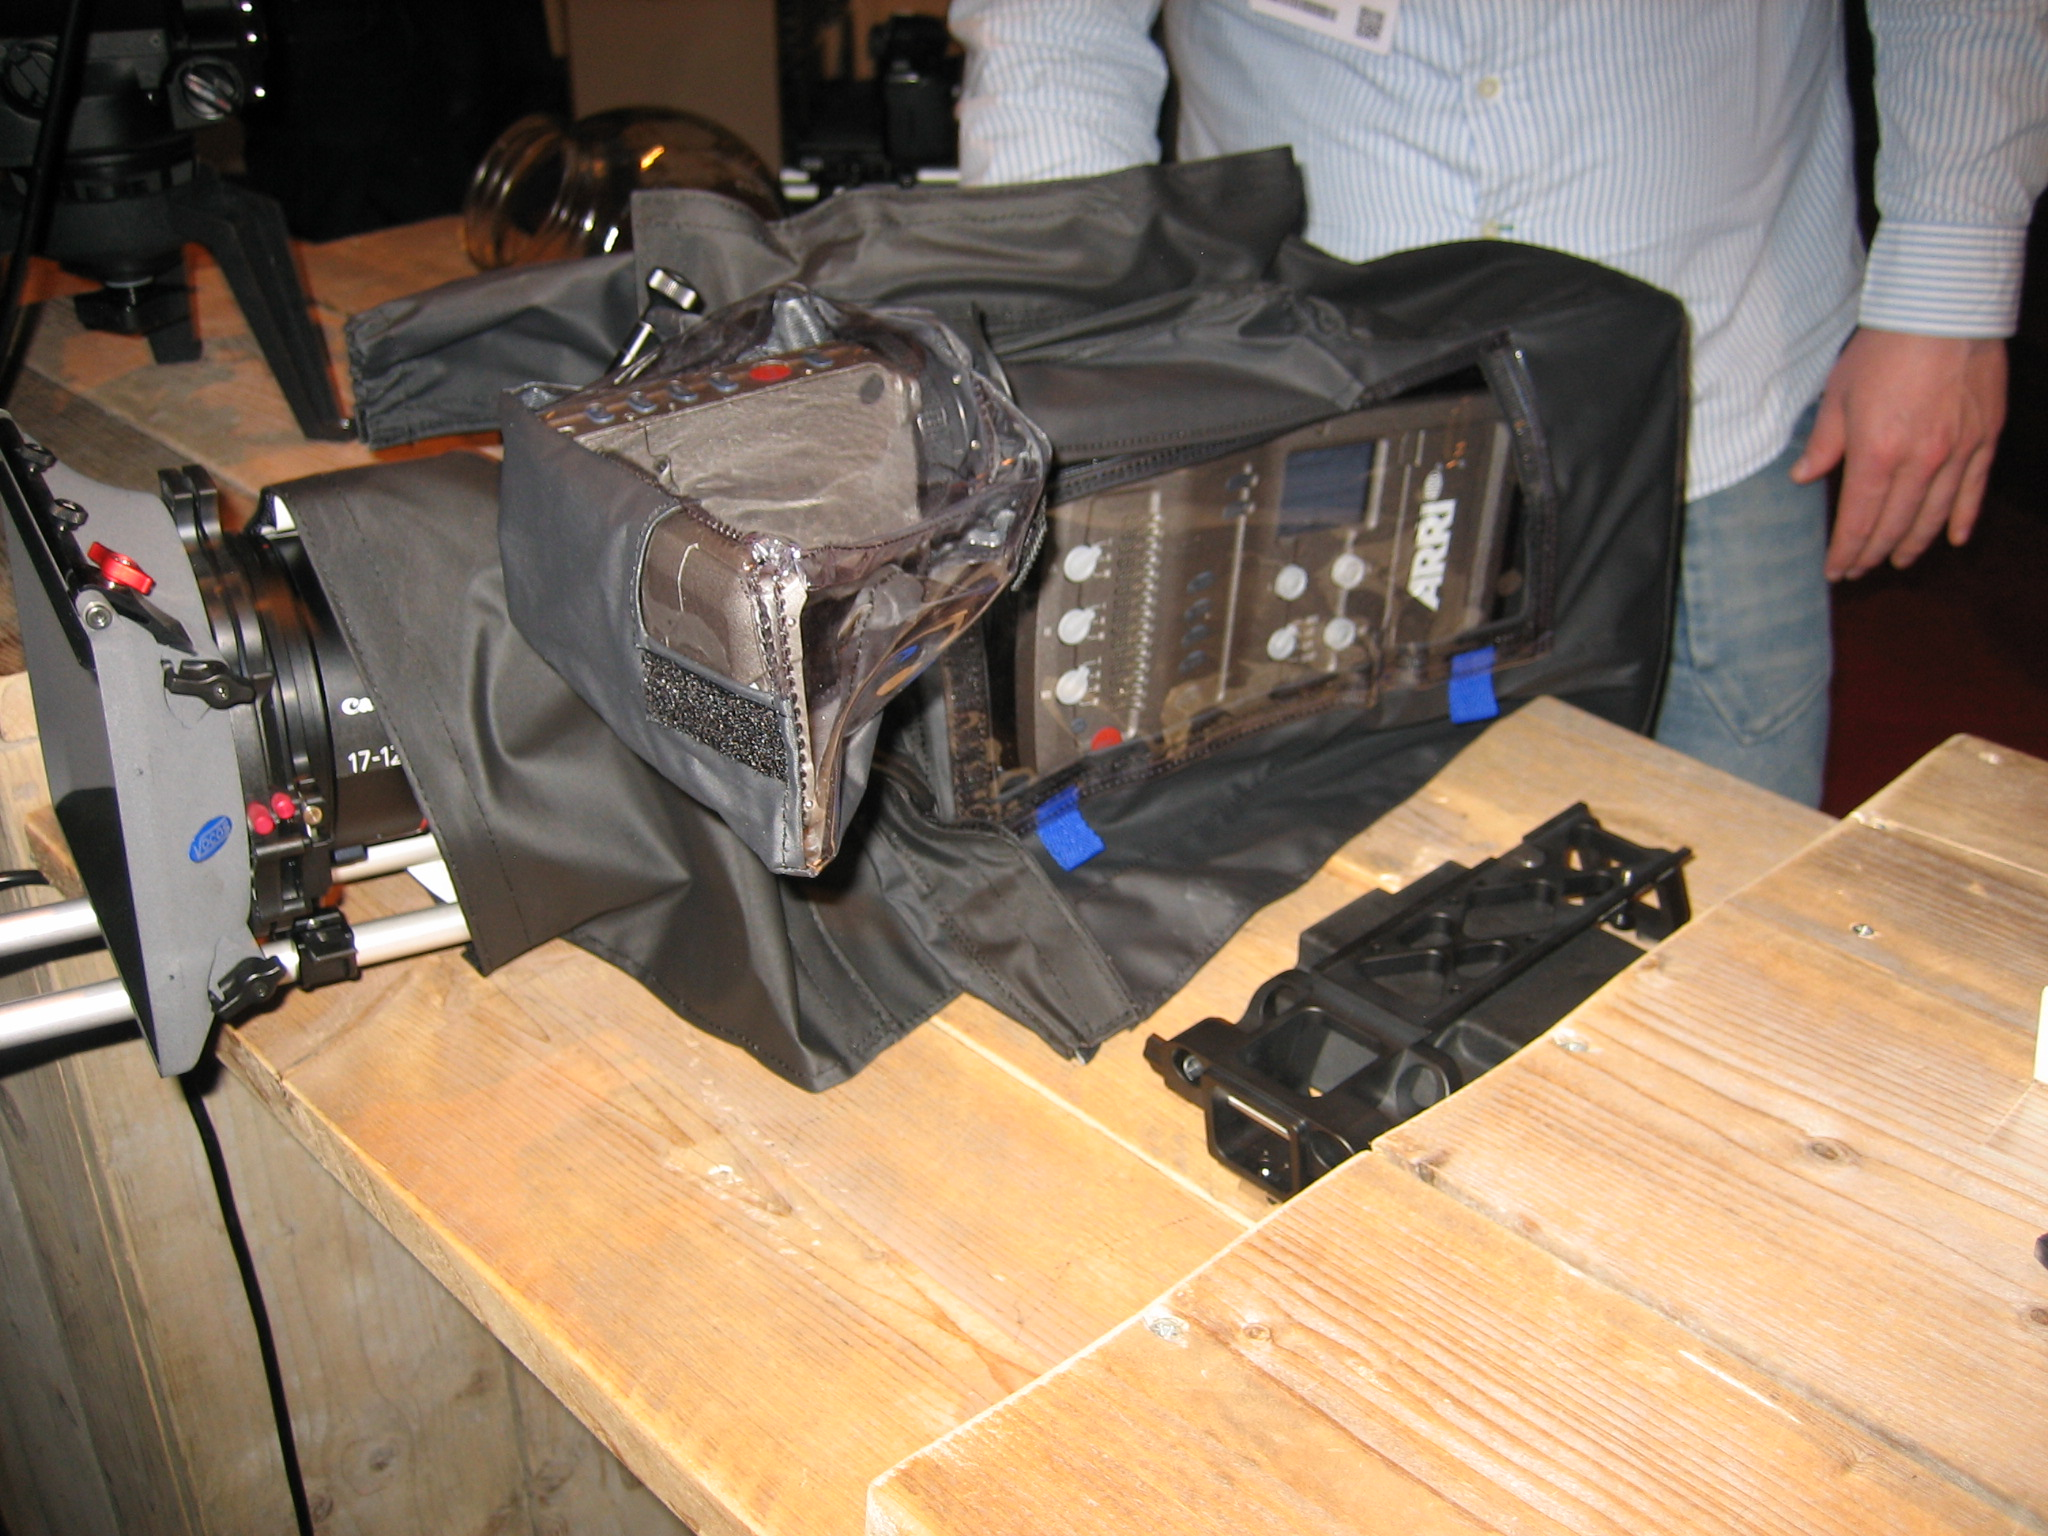 camRade designs rain cover for the ARRI AMIRA